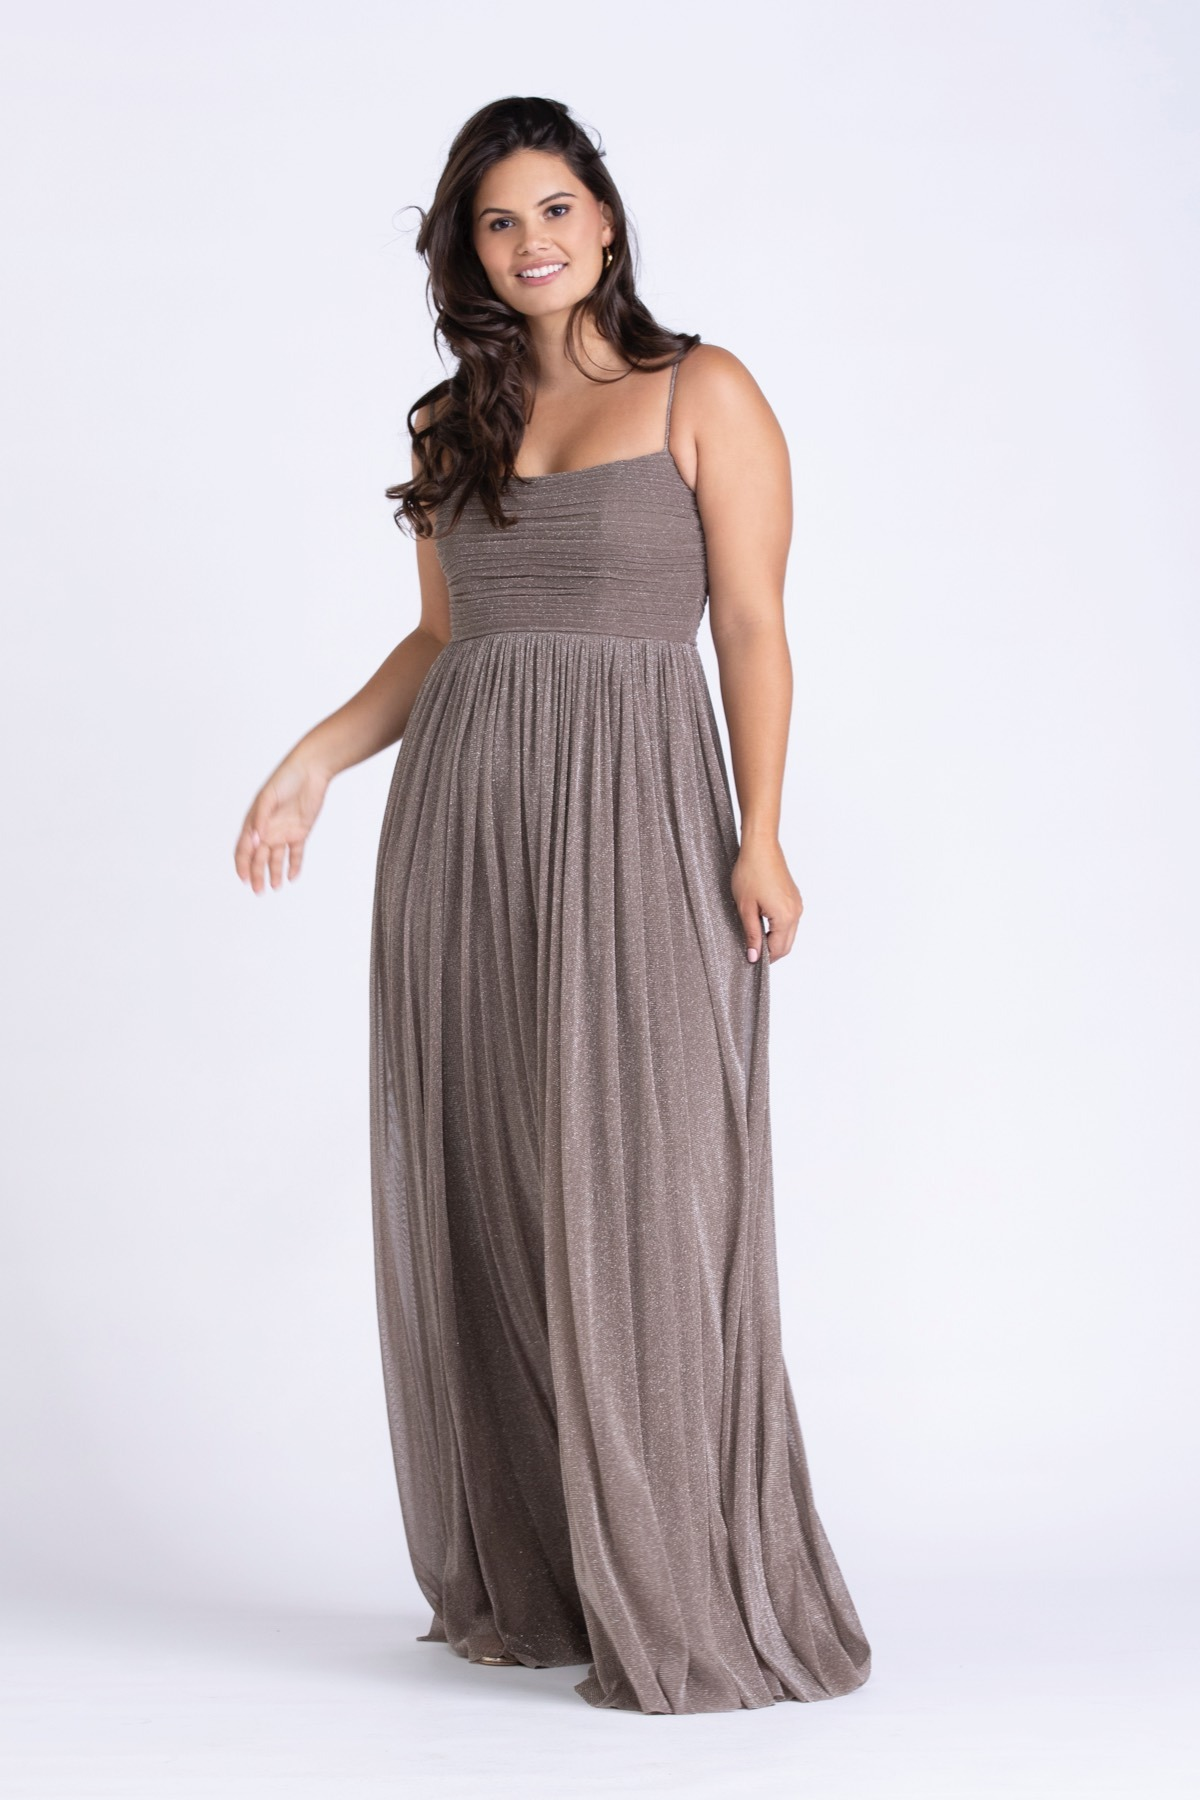 Our Cooper dress, crafted from shimmer mesh, lets every member of your bridal party shine. Our shimmer mesh is lined in a knit fabric giving the gowns a generous amount of give.